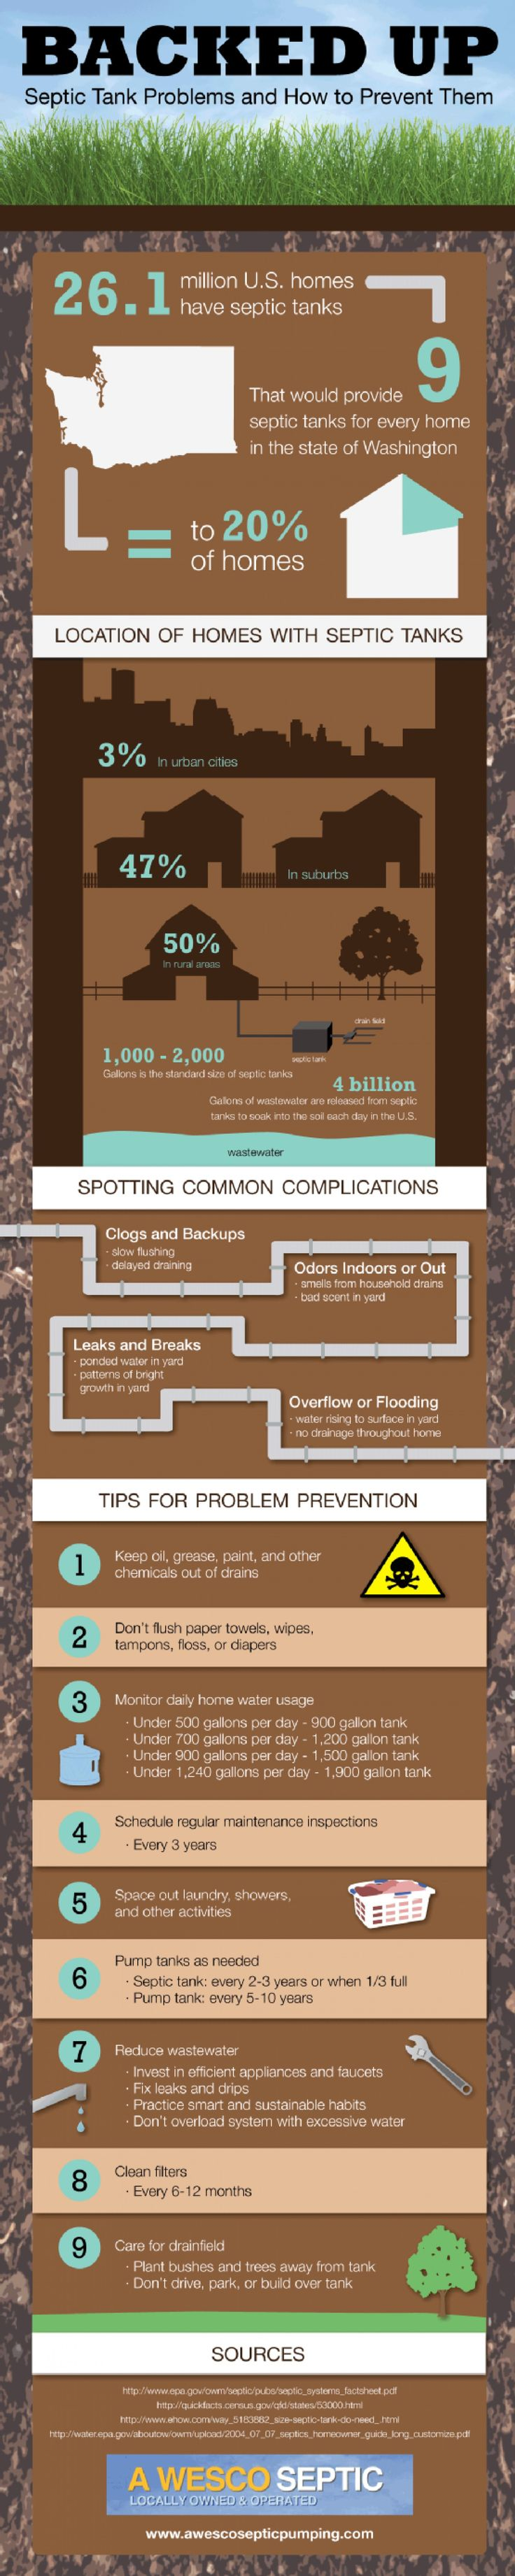 Backed Up: Septic Tank Problems and How to Prevent Them